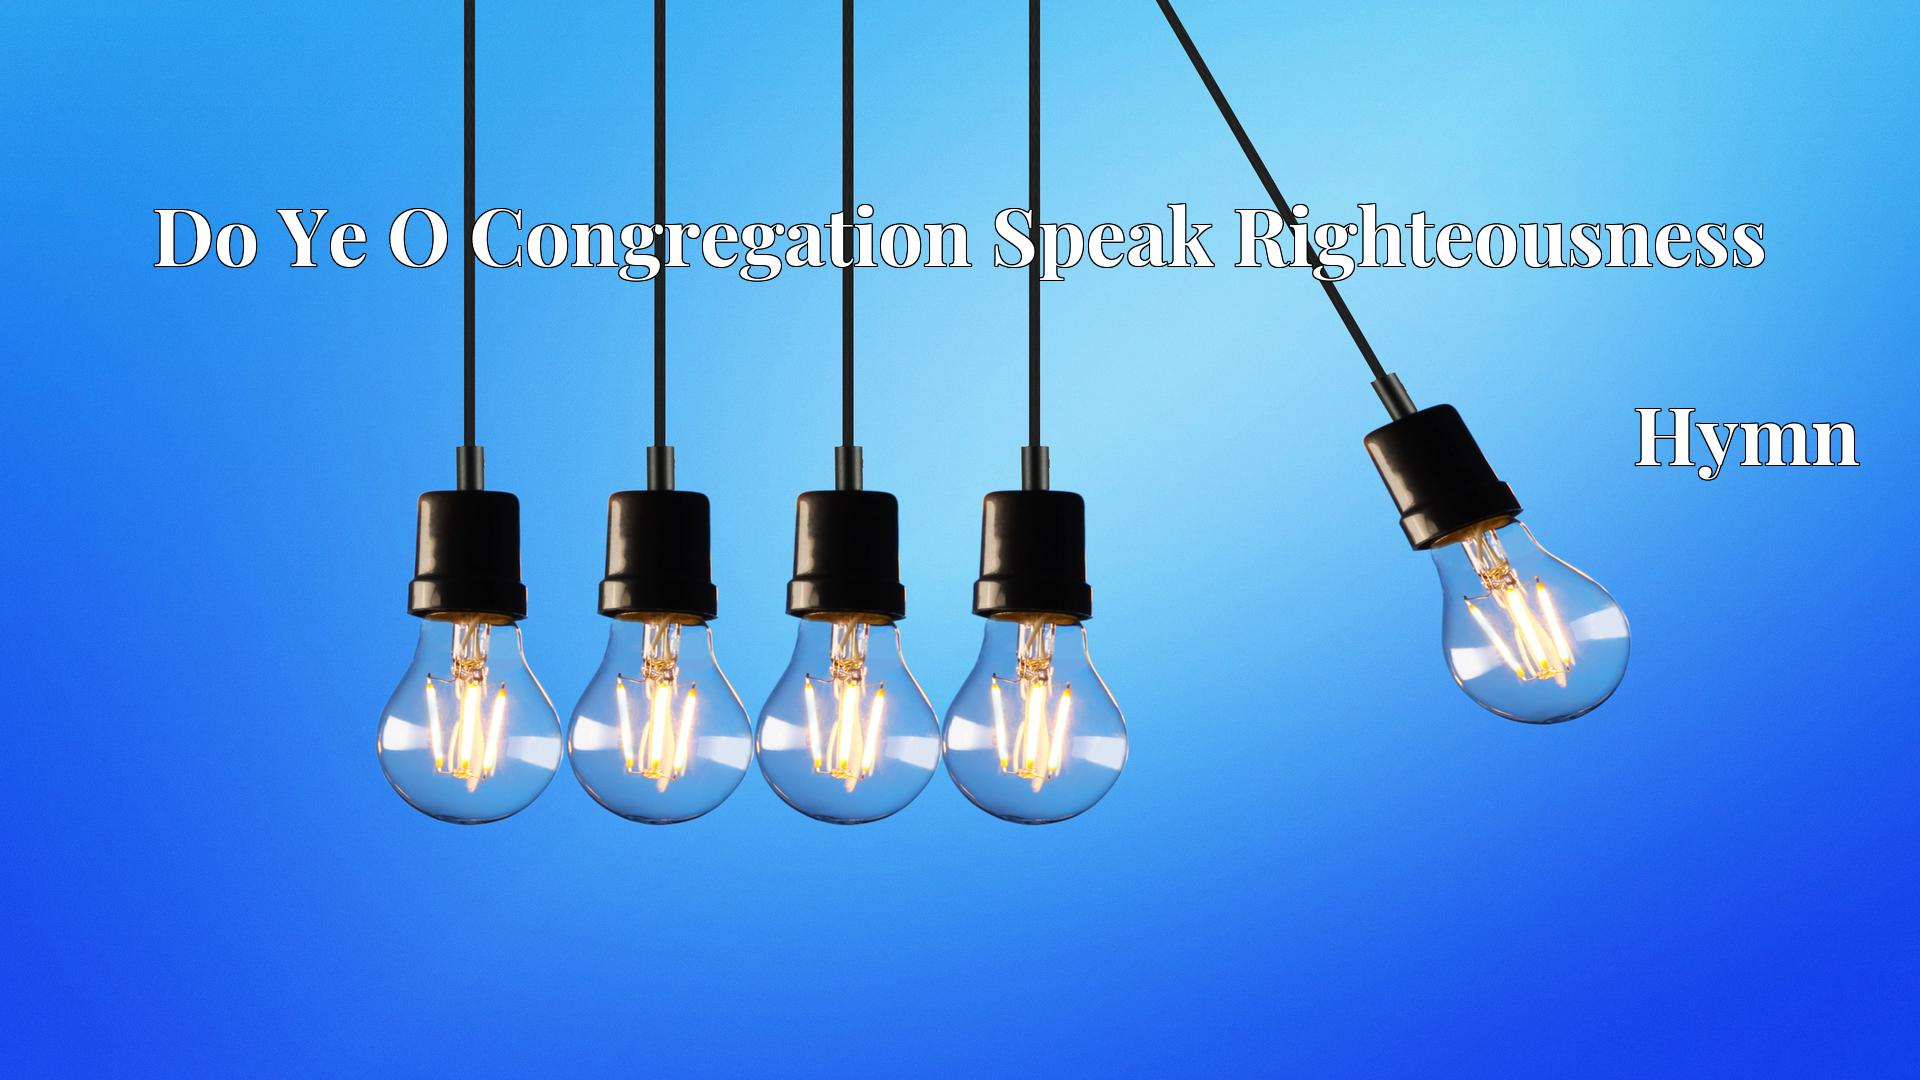 Do Ye O Congregation Speak Righteousness - Hymn